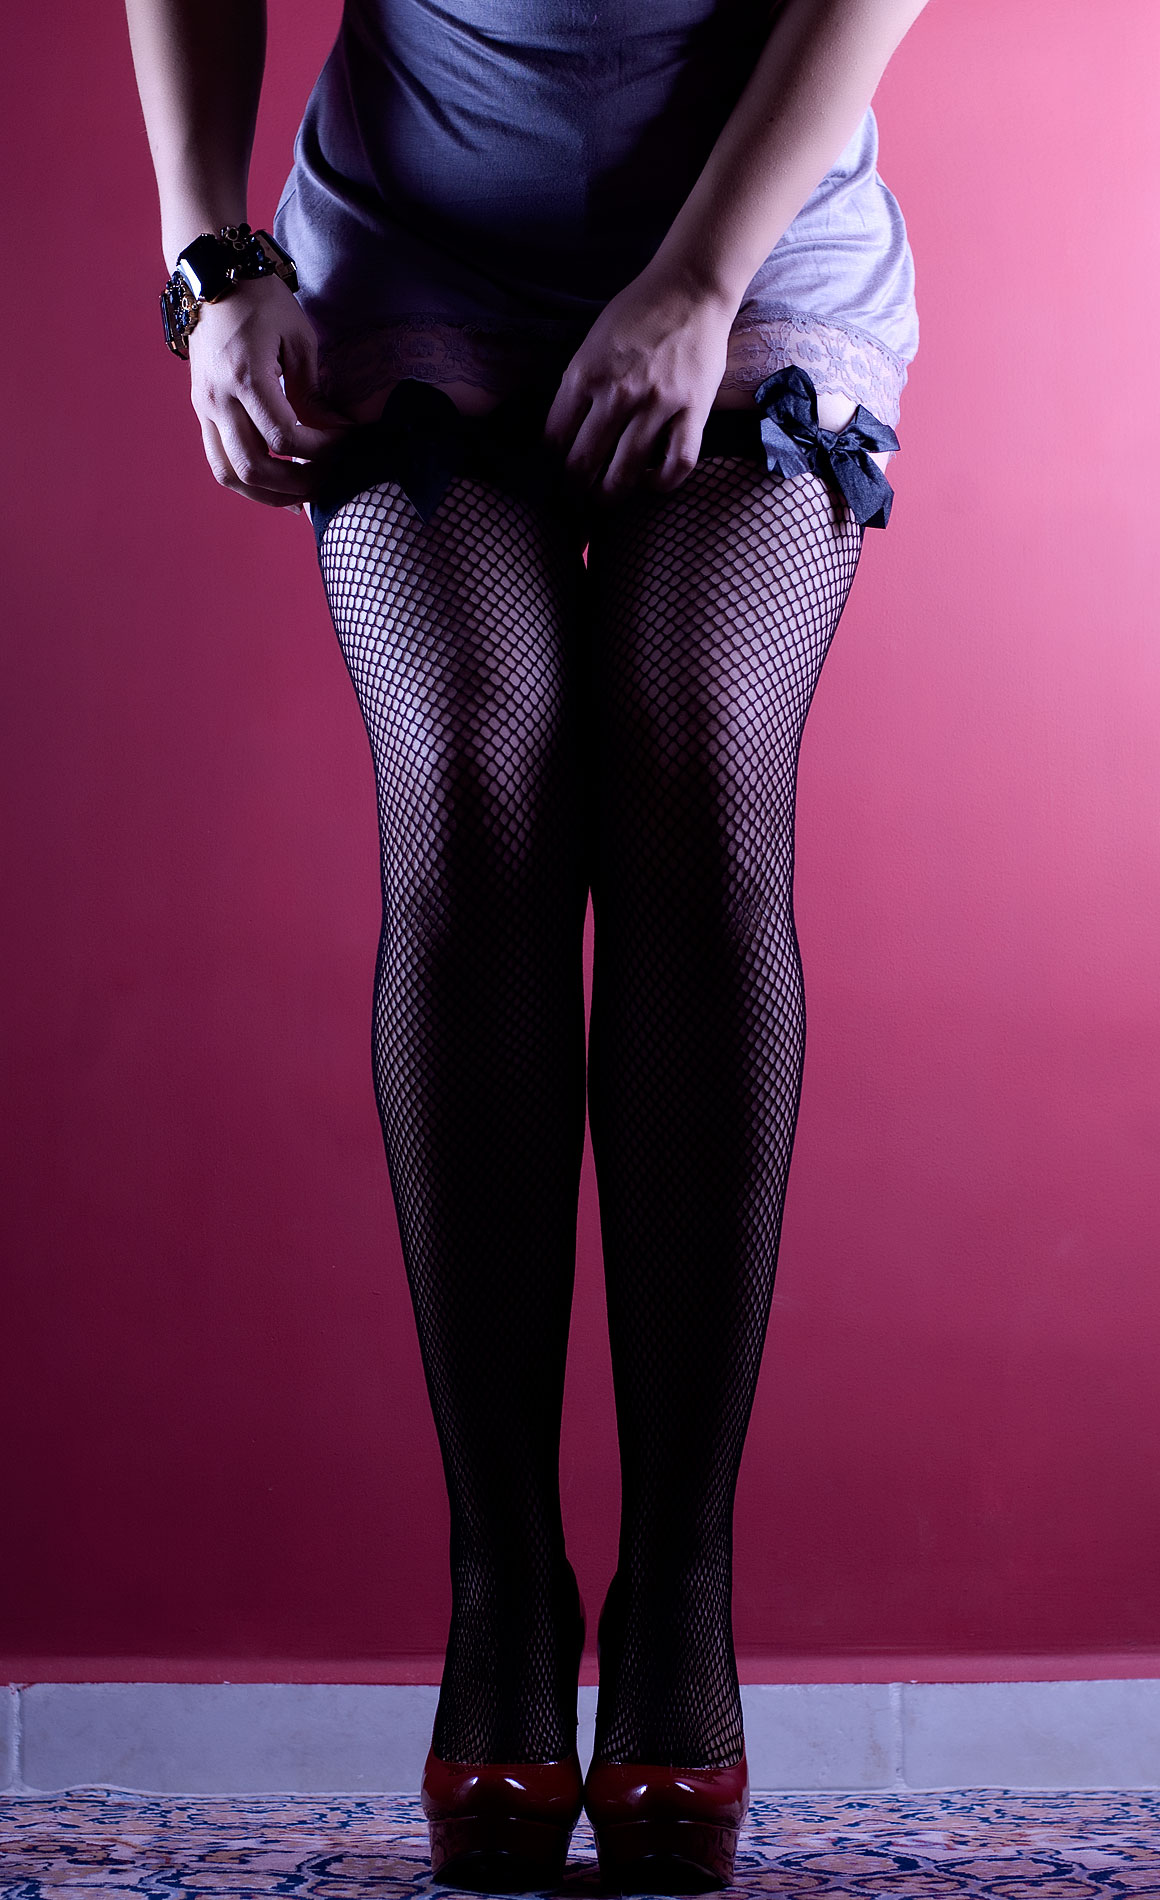 Fishnets by emiliogtz